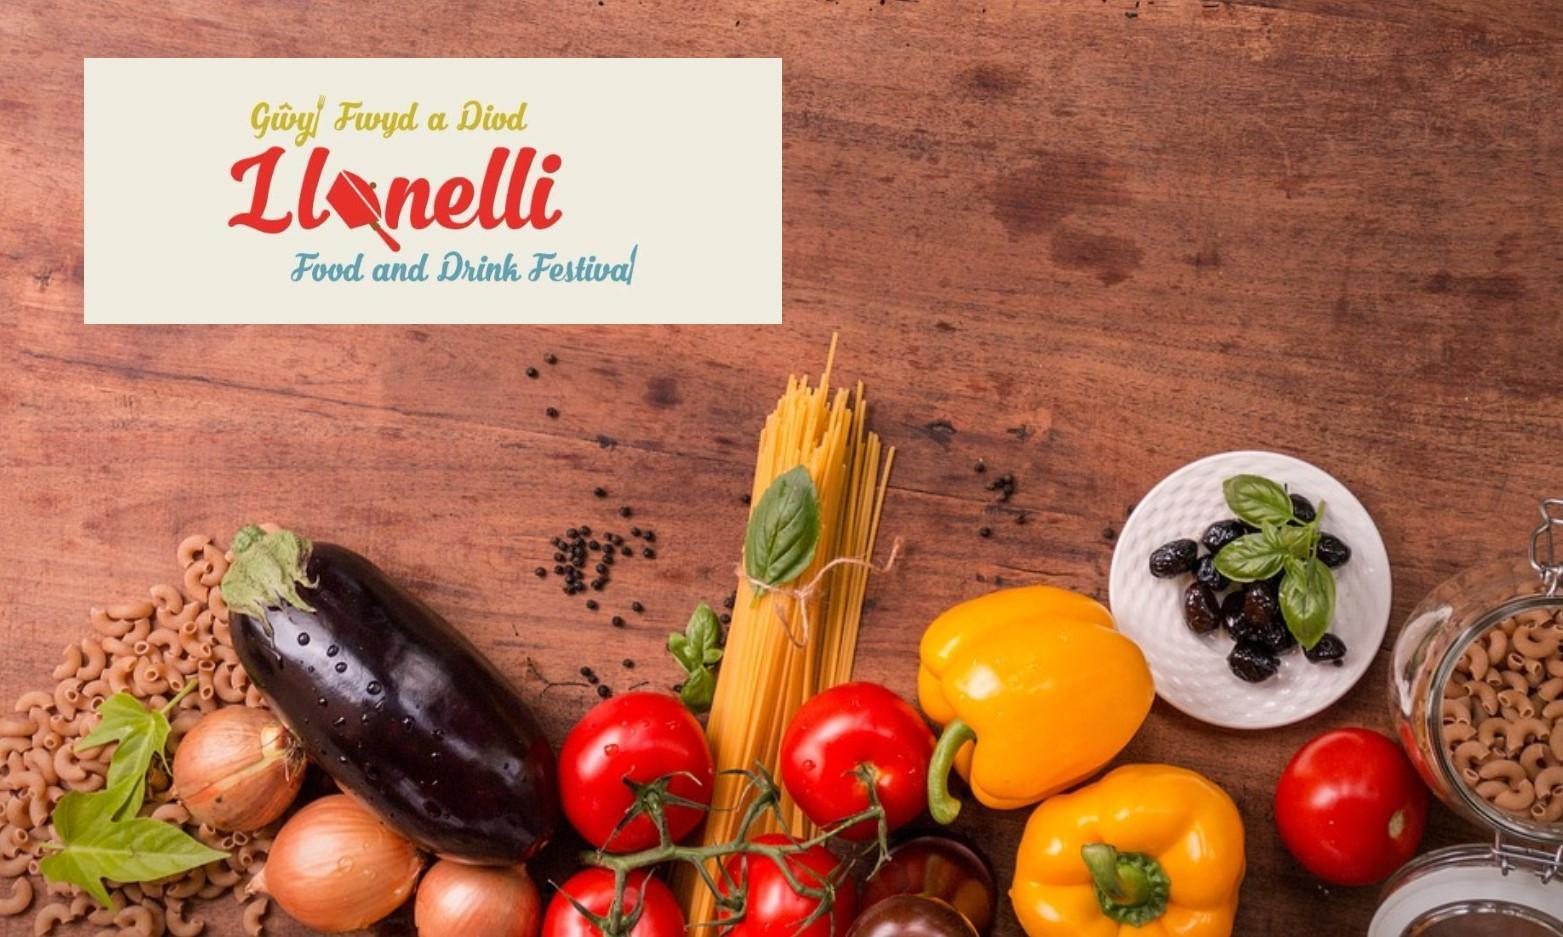 Llanelli Food and Drink Festival 2019